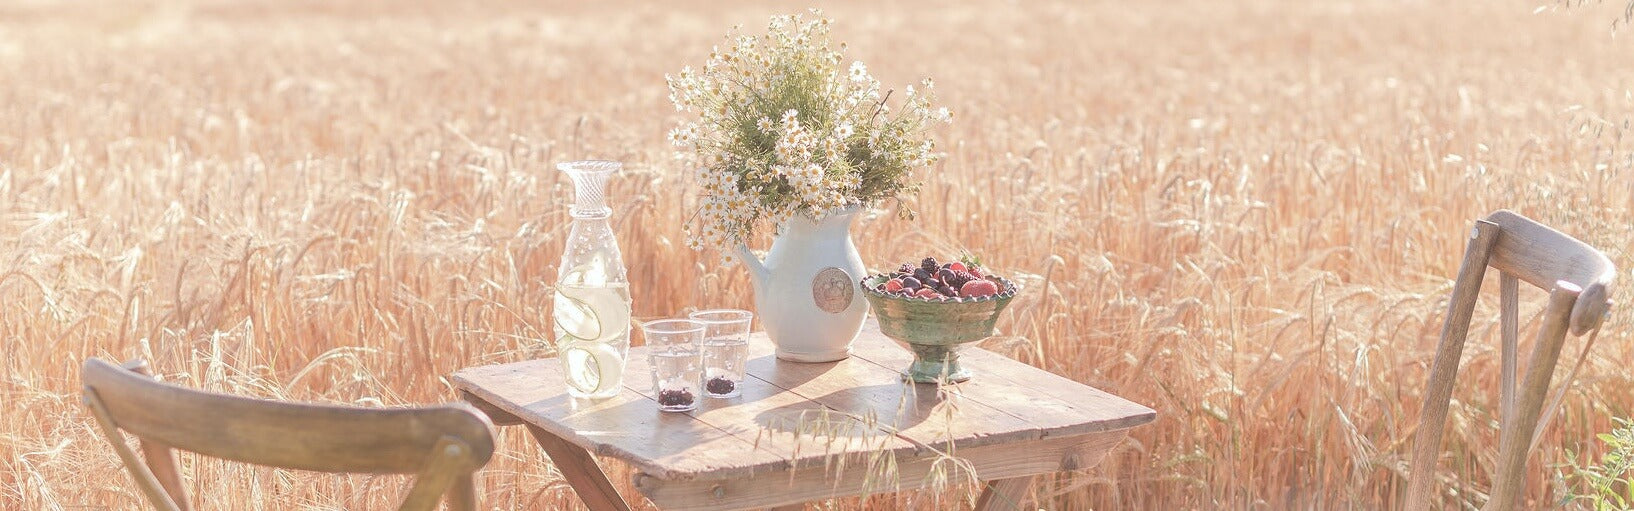 Issy Granger Glass Carafe Jug and Water Glasses | Flo Brooks Photography